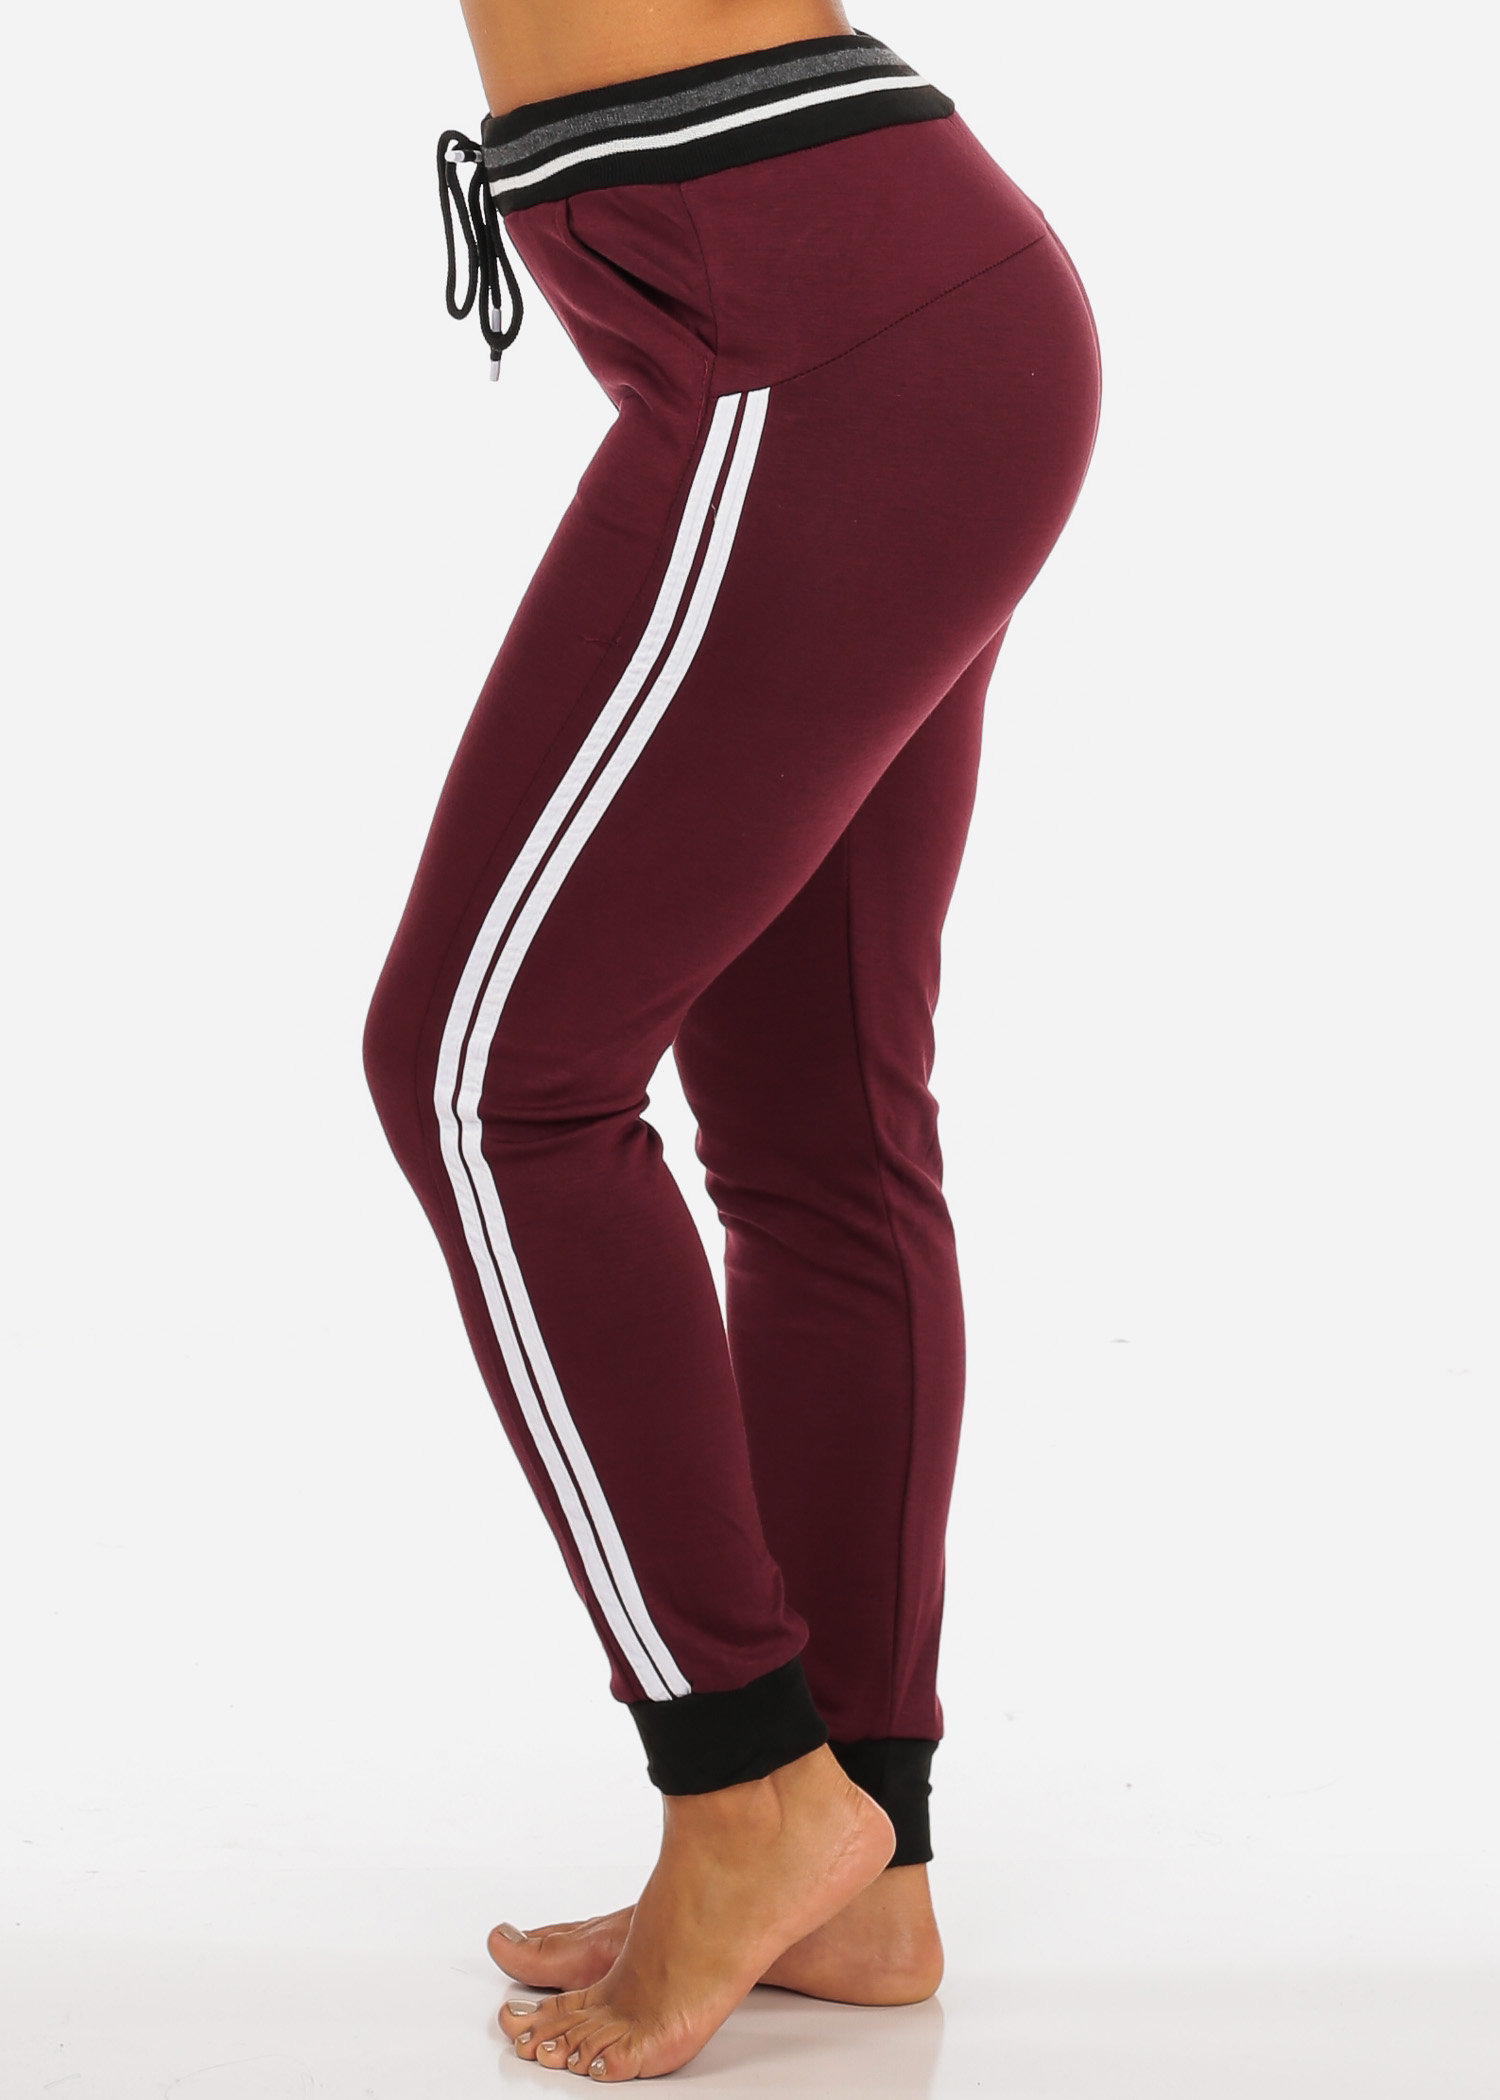 Womens Juniors One Size Activewear High Waisted Drawstring Burgundy Jogger Pants W Stripe Sides 41239P